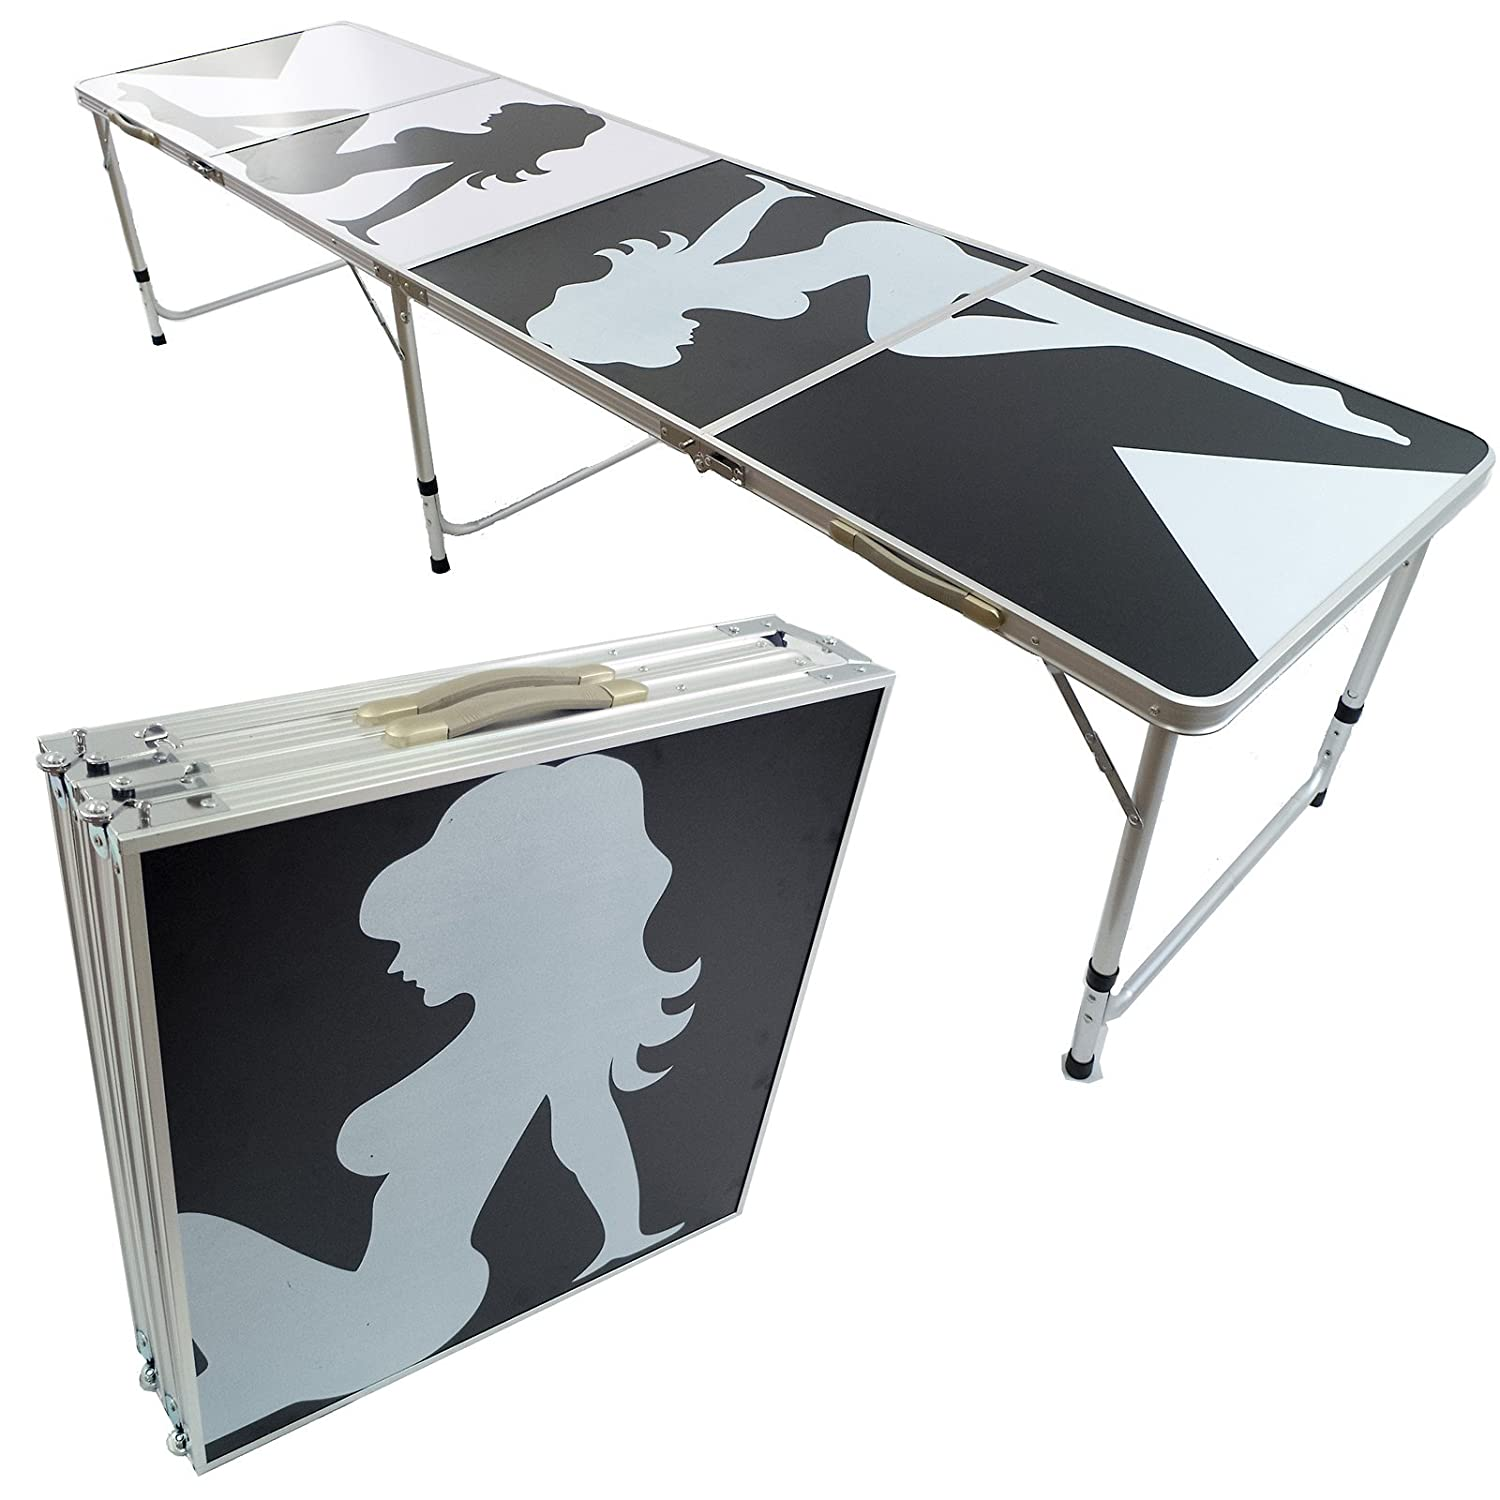 NEW 8' BEER PONG TABLE ALUMINUM PORTABLE ADJUSTABLE FOLDING INDOOR OUTDOOR TAILGATE PARTY GAME #1 PONGBUDDY